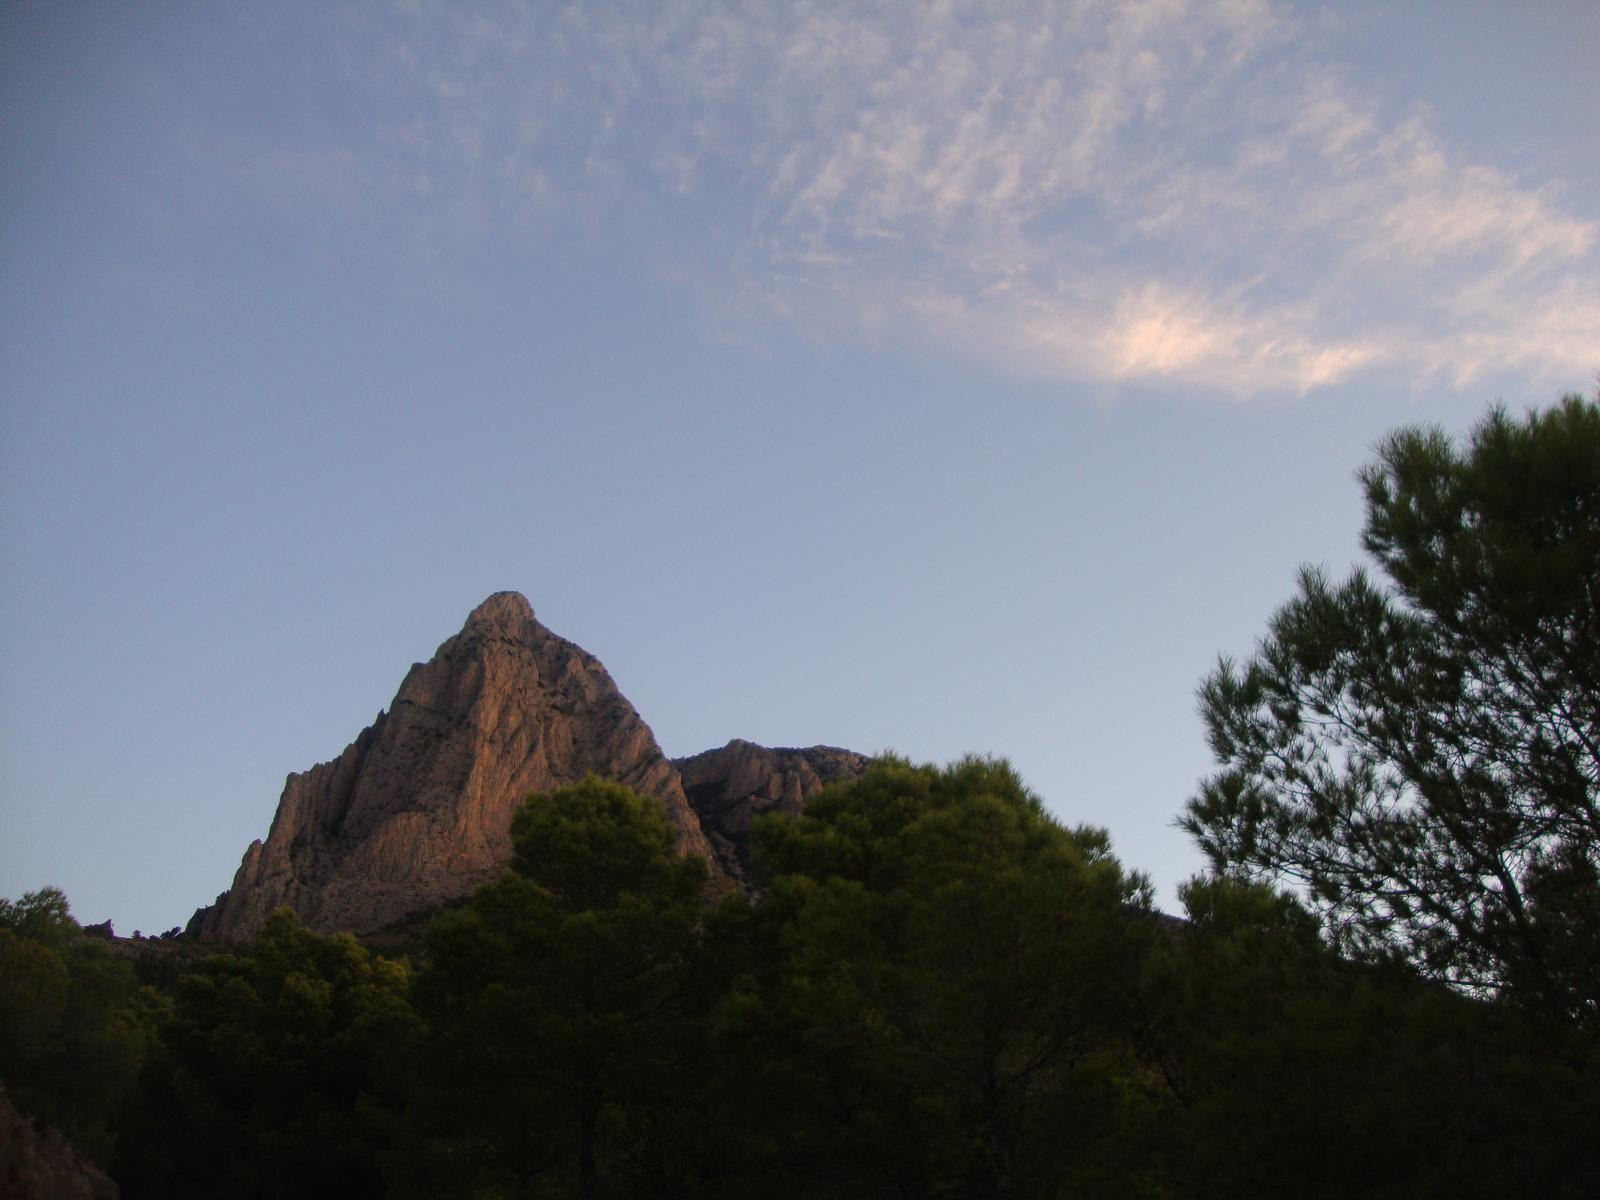 Photo of Puig Campana por Km. Vertical. Cordillera Prebética. Finestrat, Alicante.